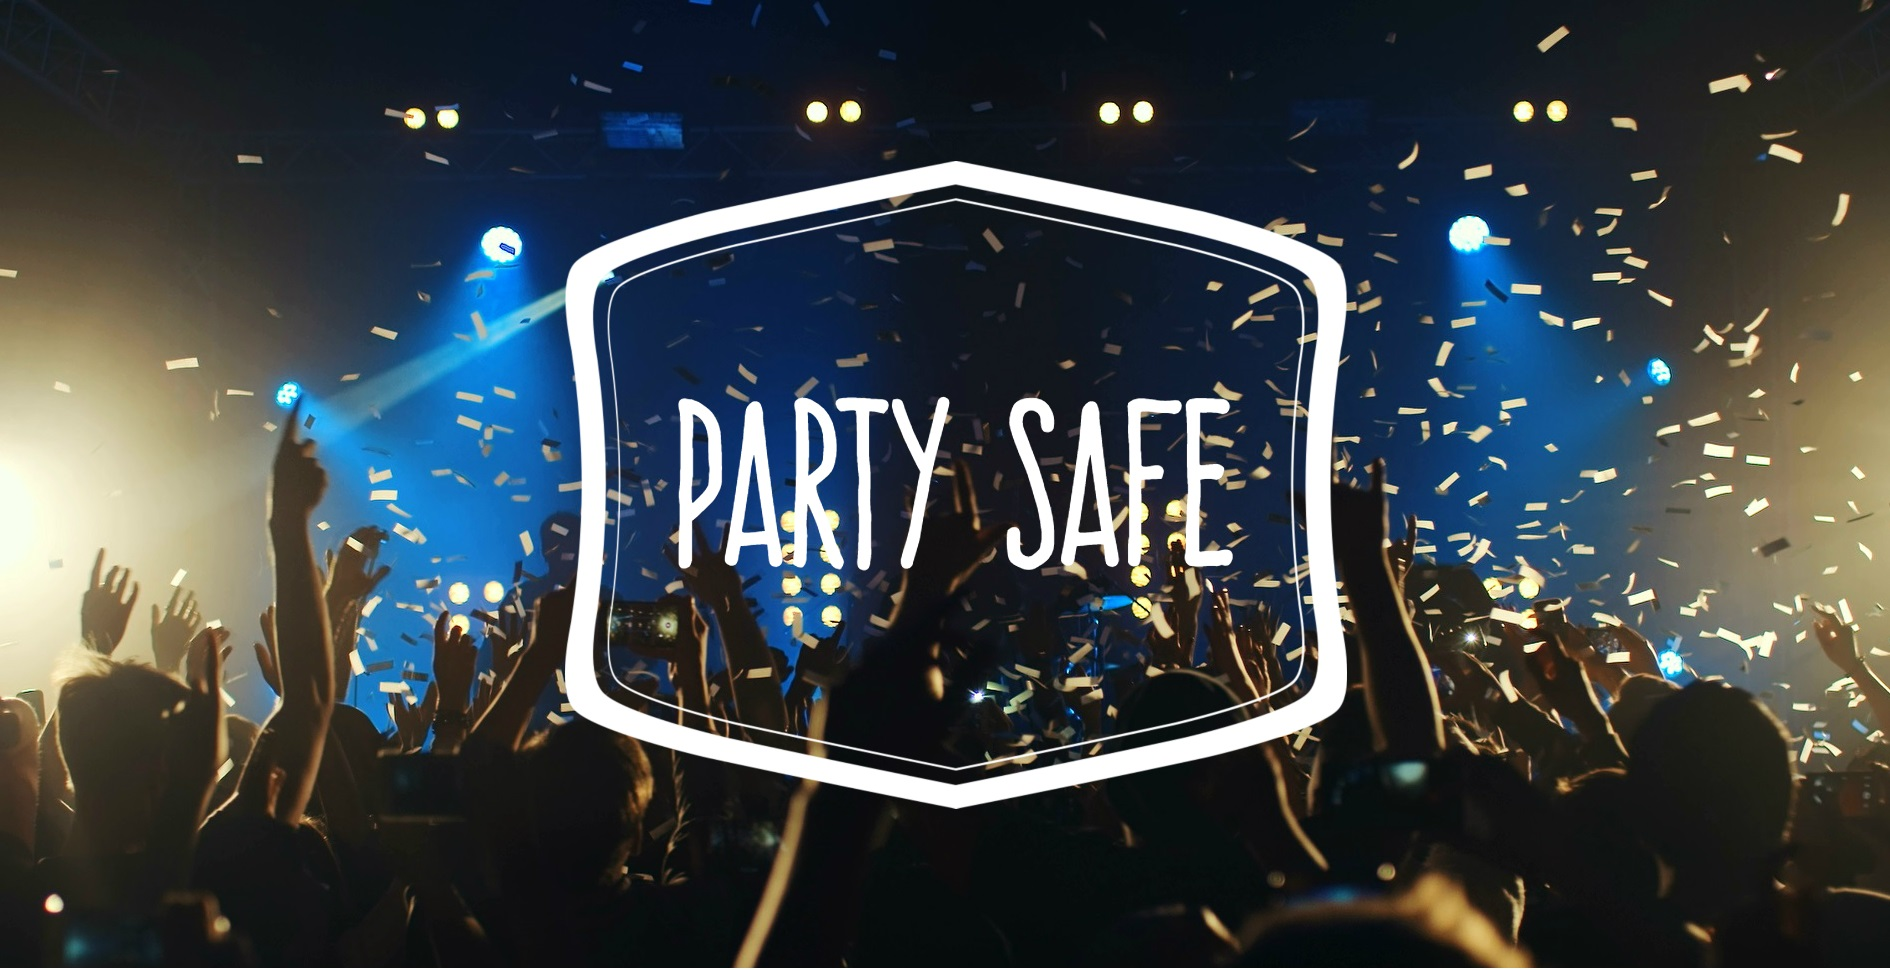 Party safe banner. People jumping up at a concert